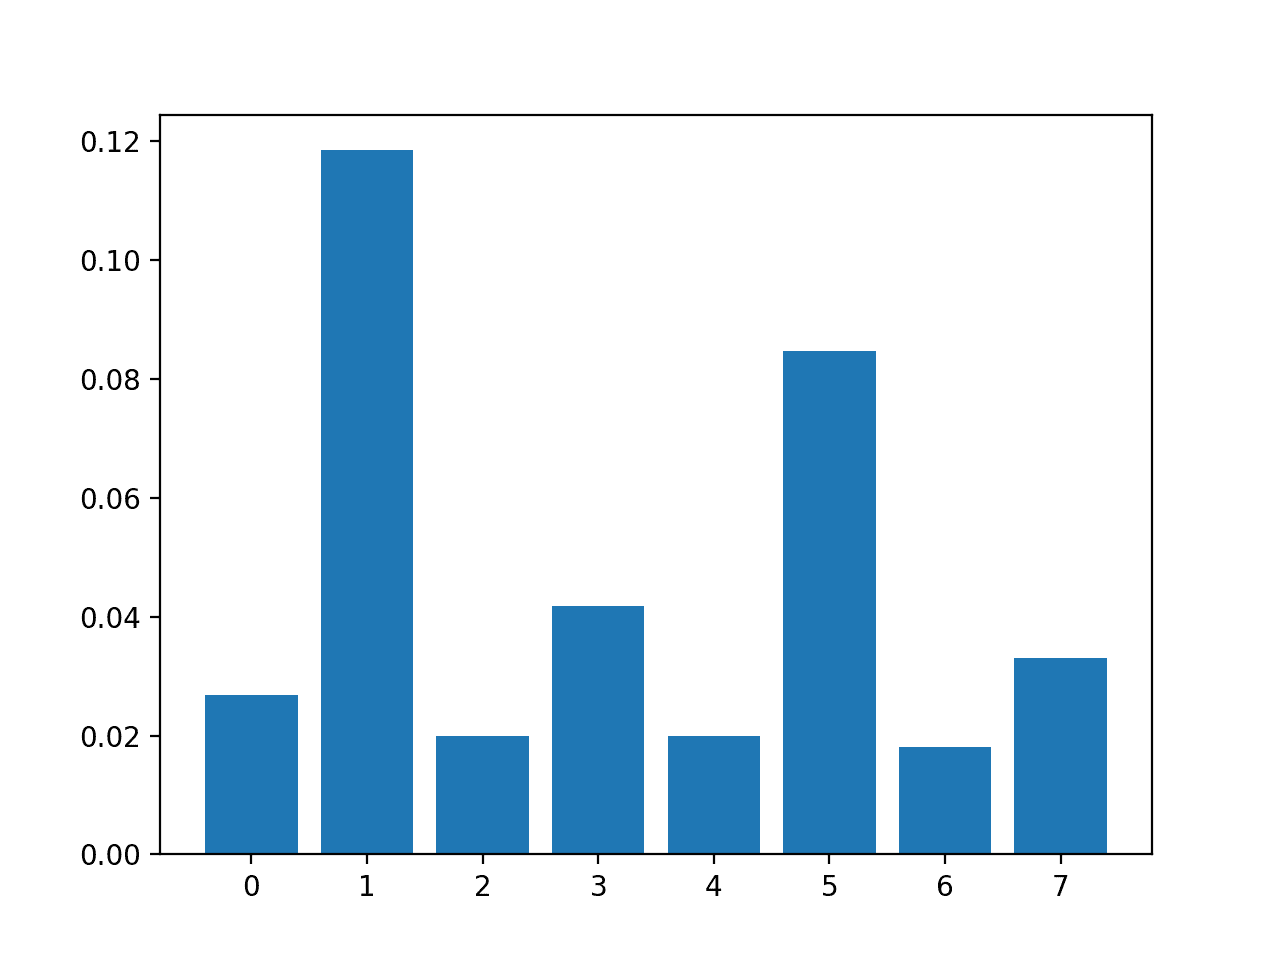 Bar Chart of the Input Features (x) vs. the Mutual Information Feature Importance (y)